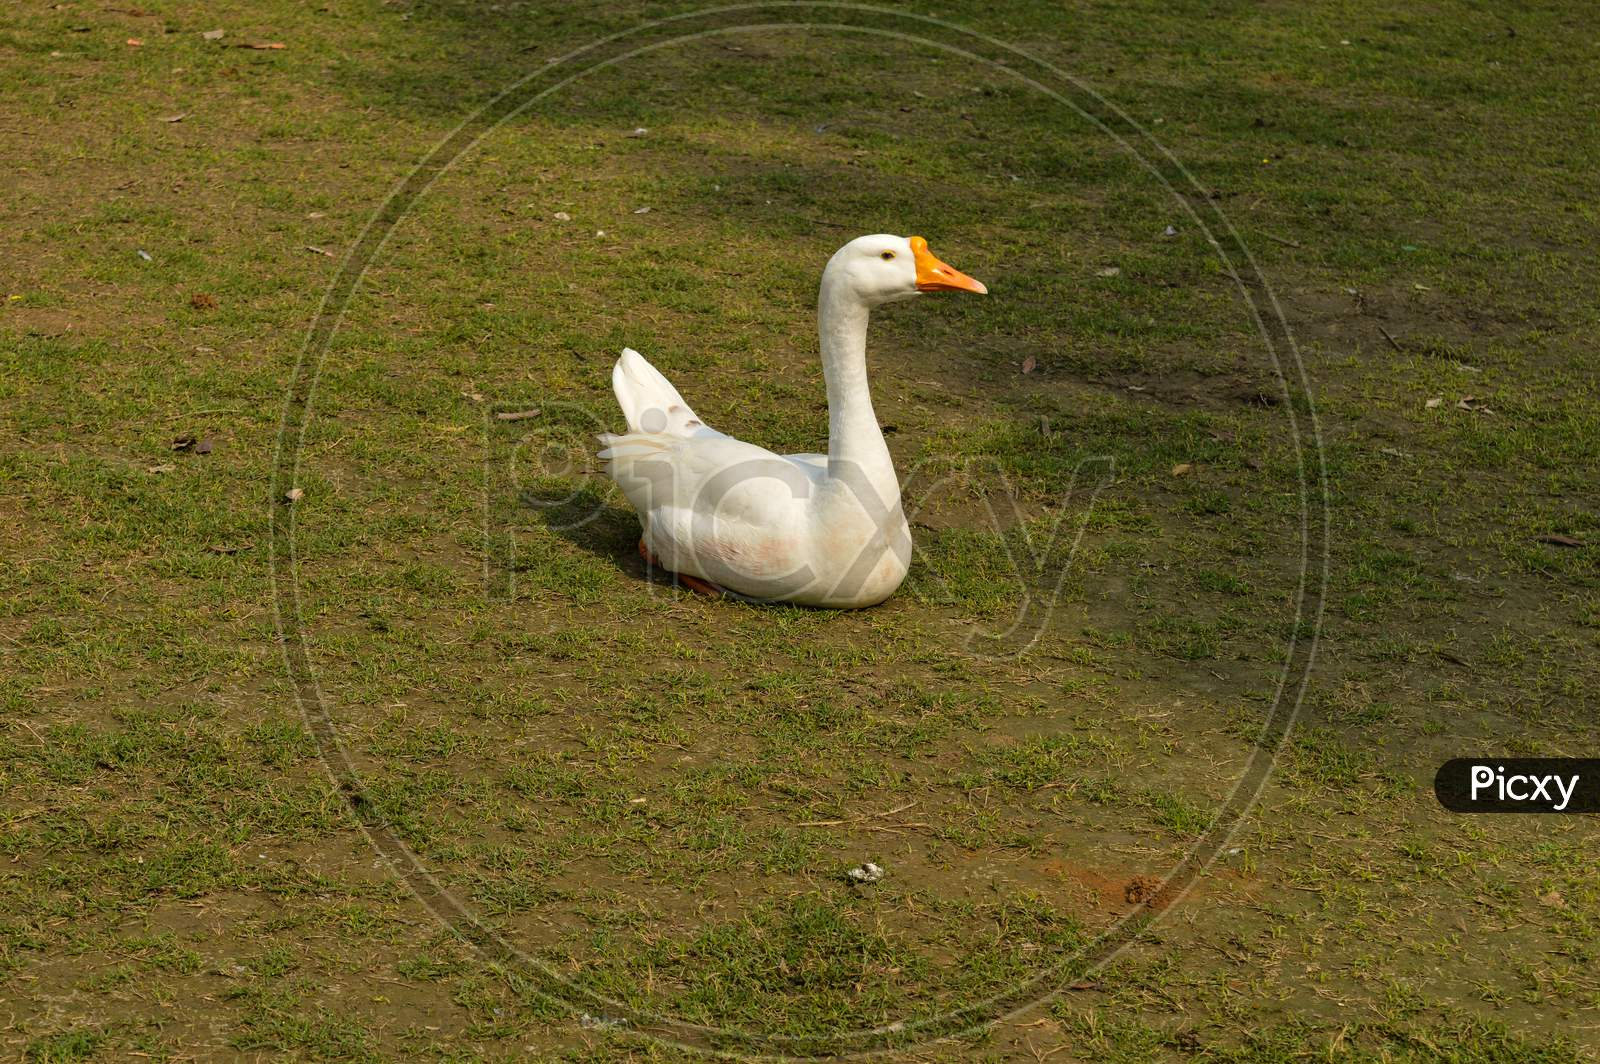 A White Color Duck Walking,Roaming,Siting Around At Garden, Lawn At Winter Foggy Morning.